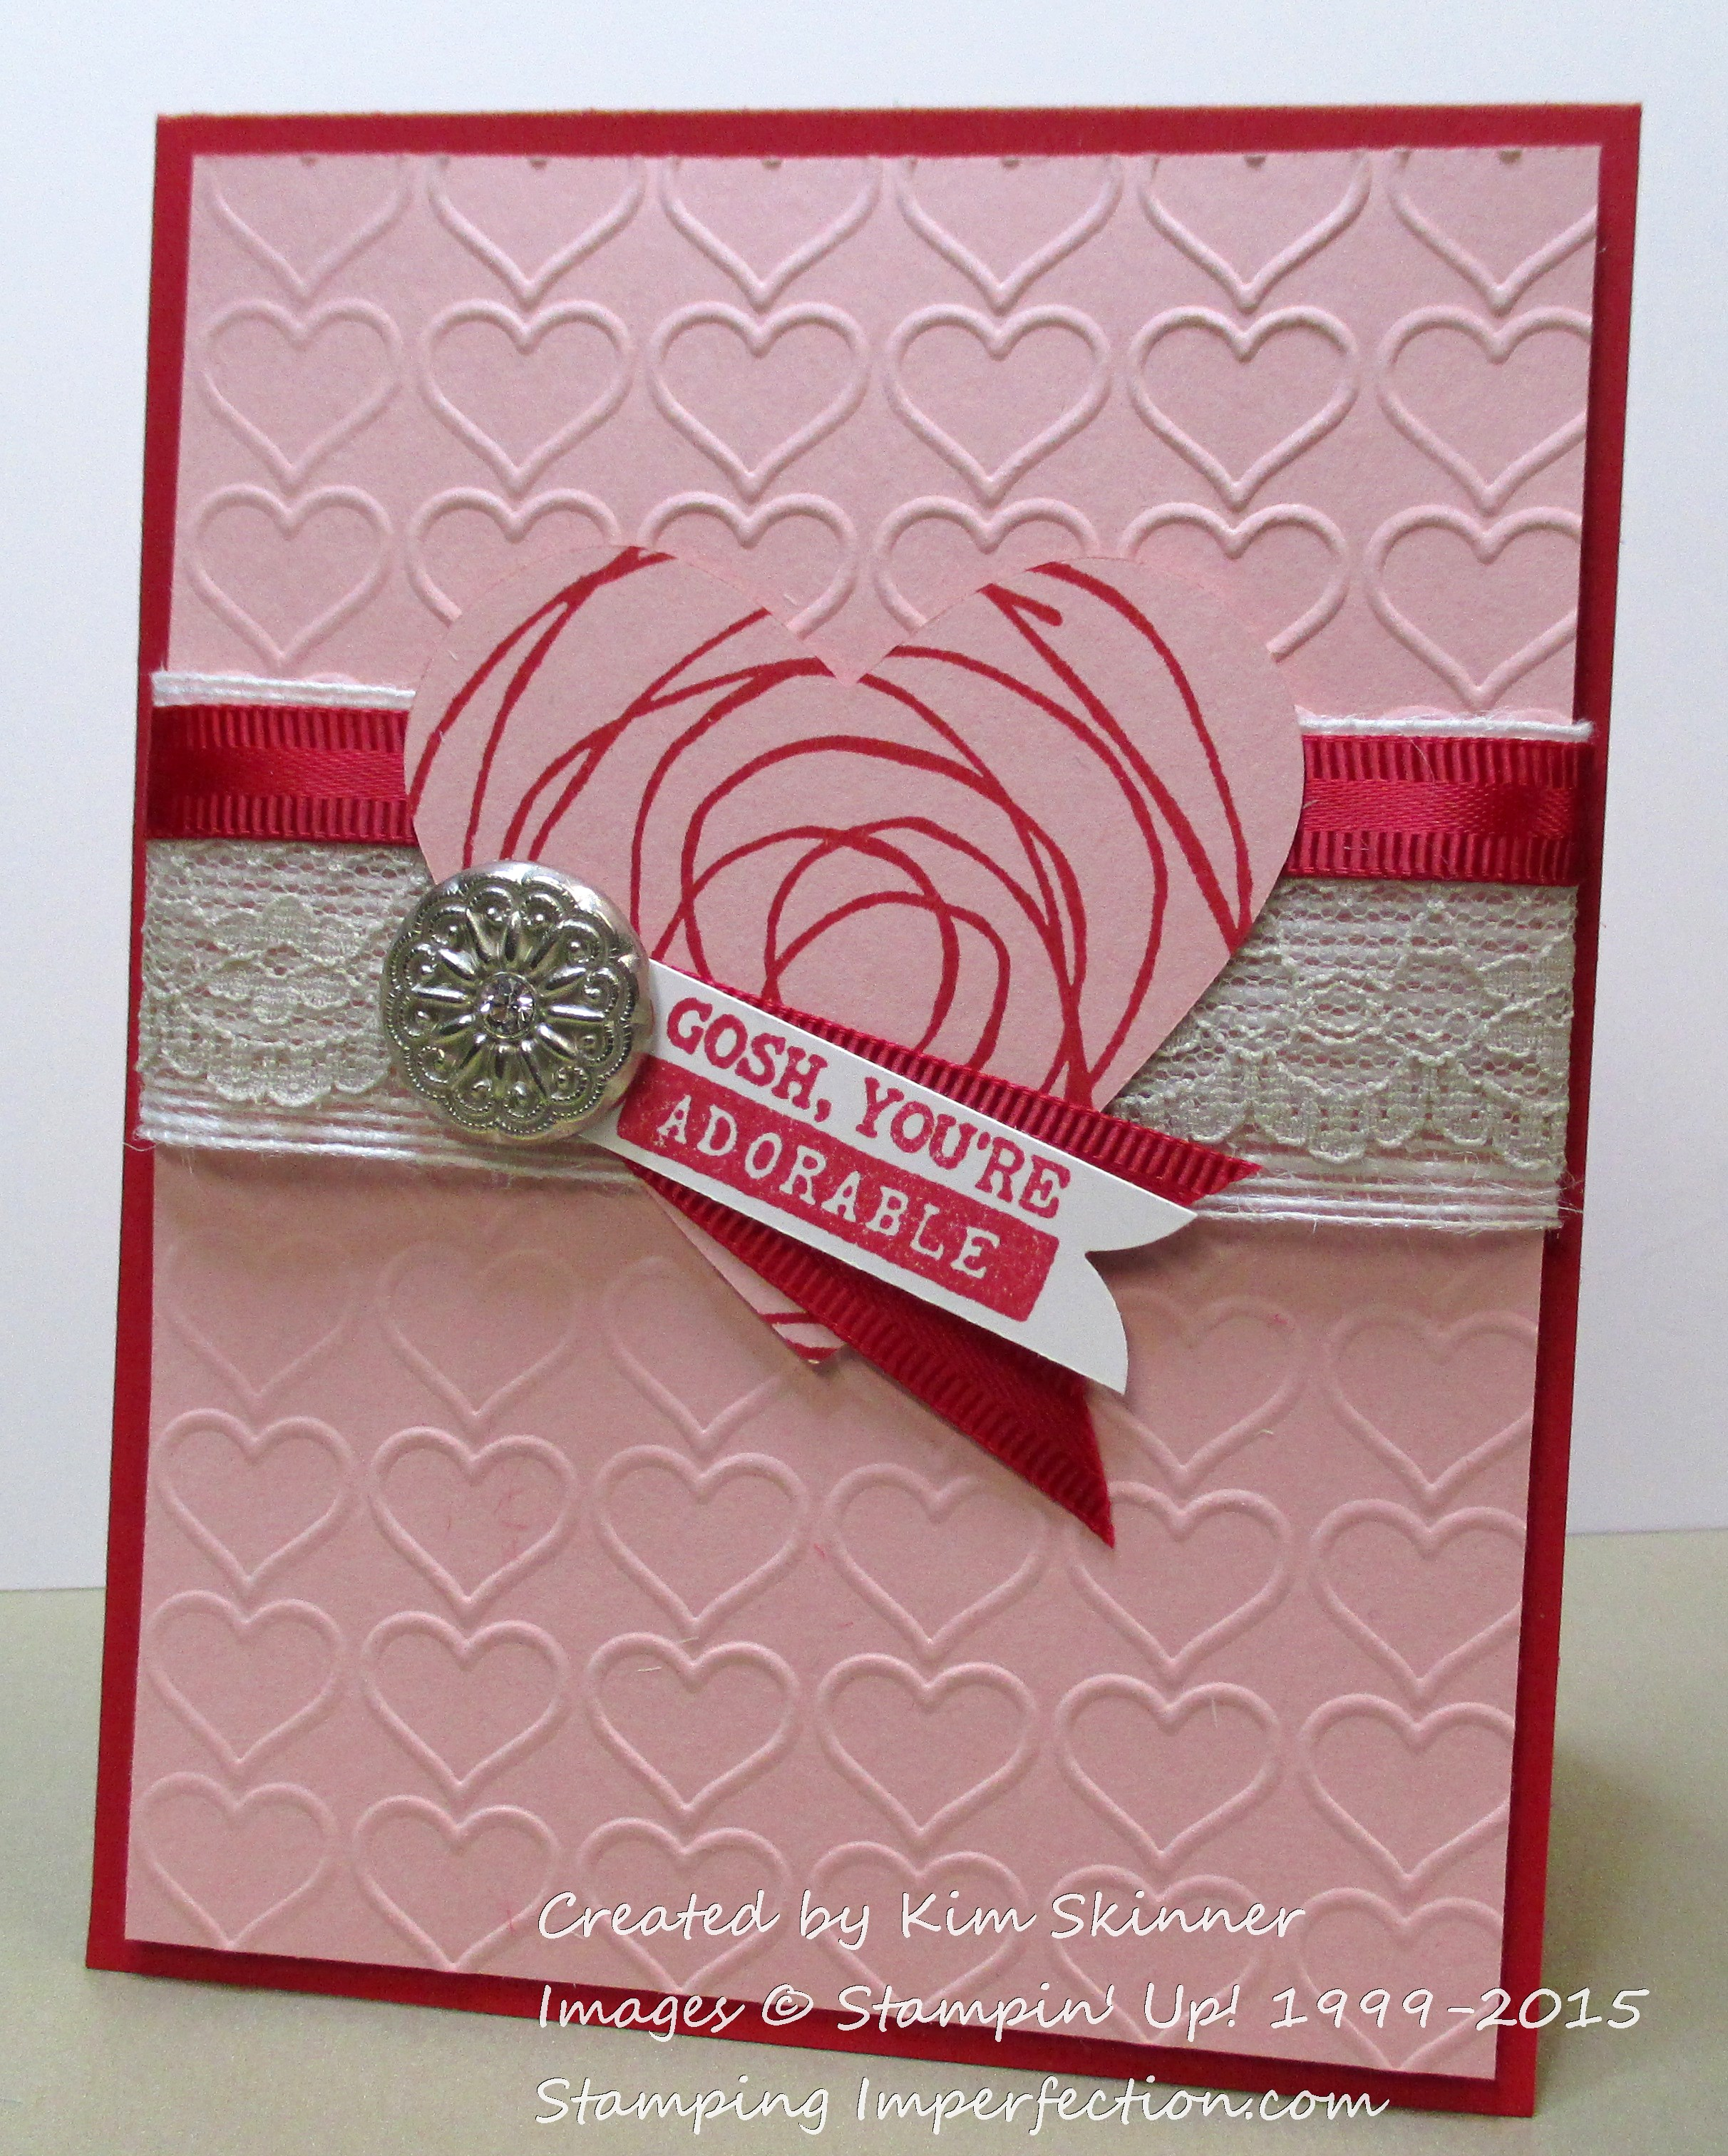 Happy Valentine's Day from Stamping Imperfection